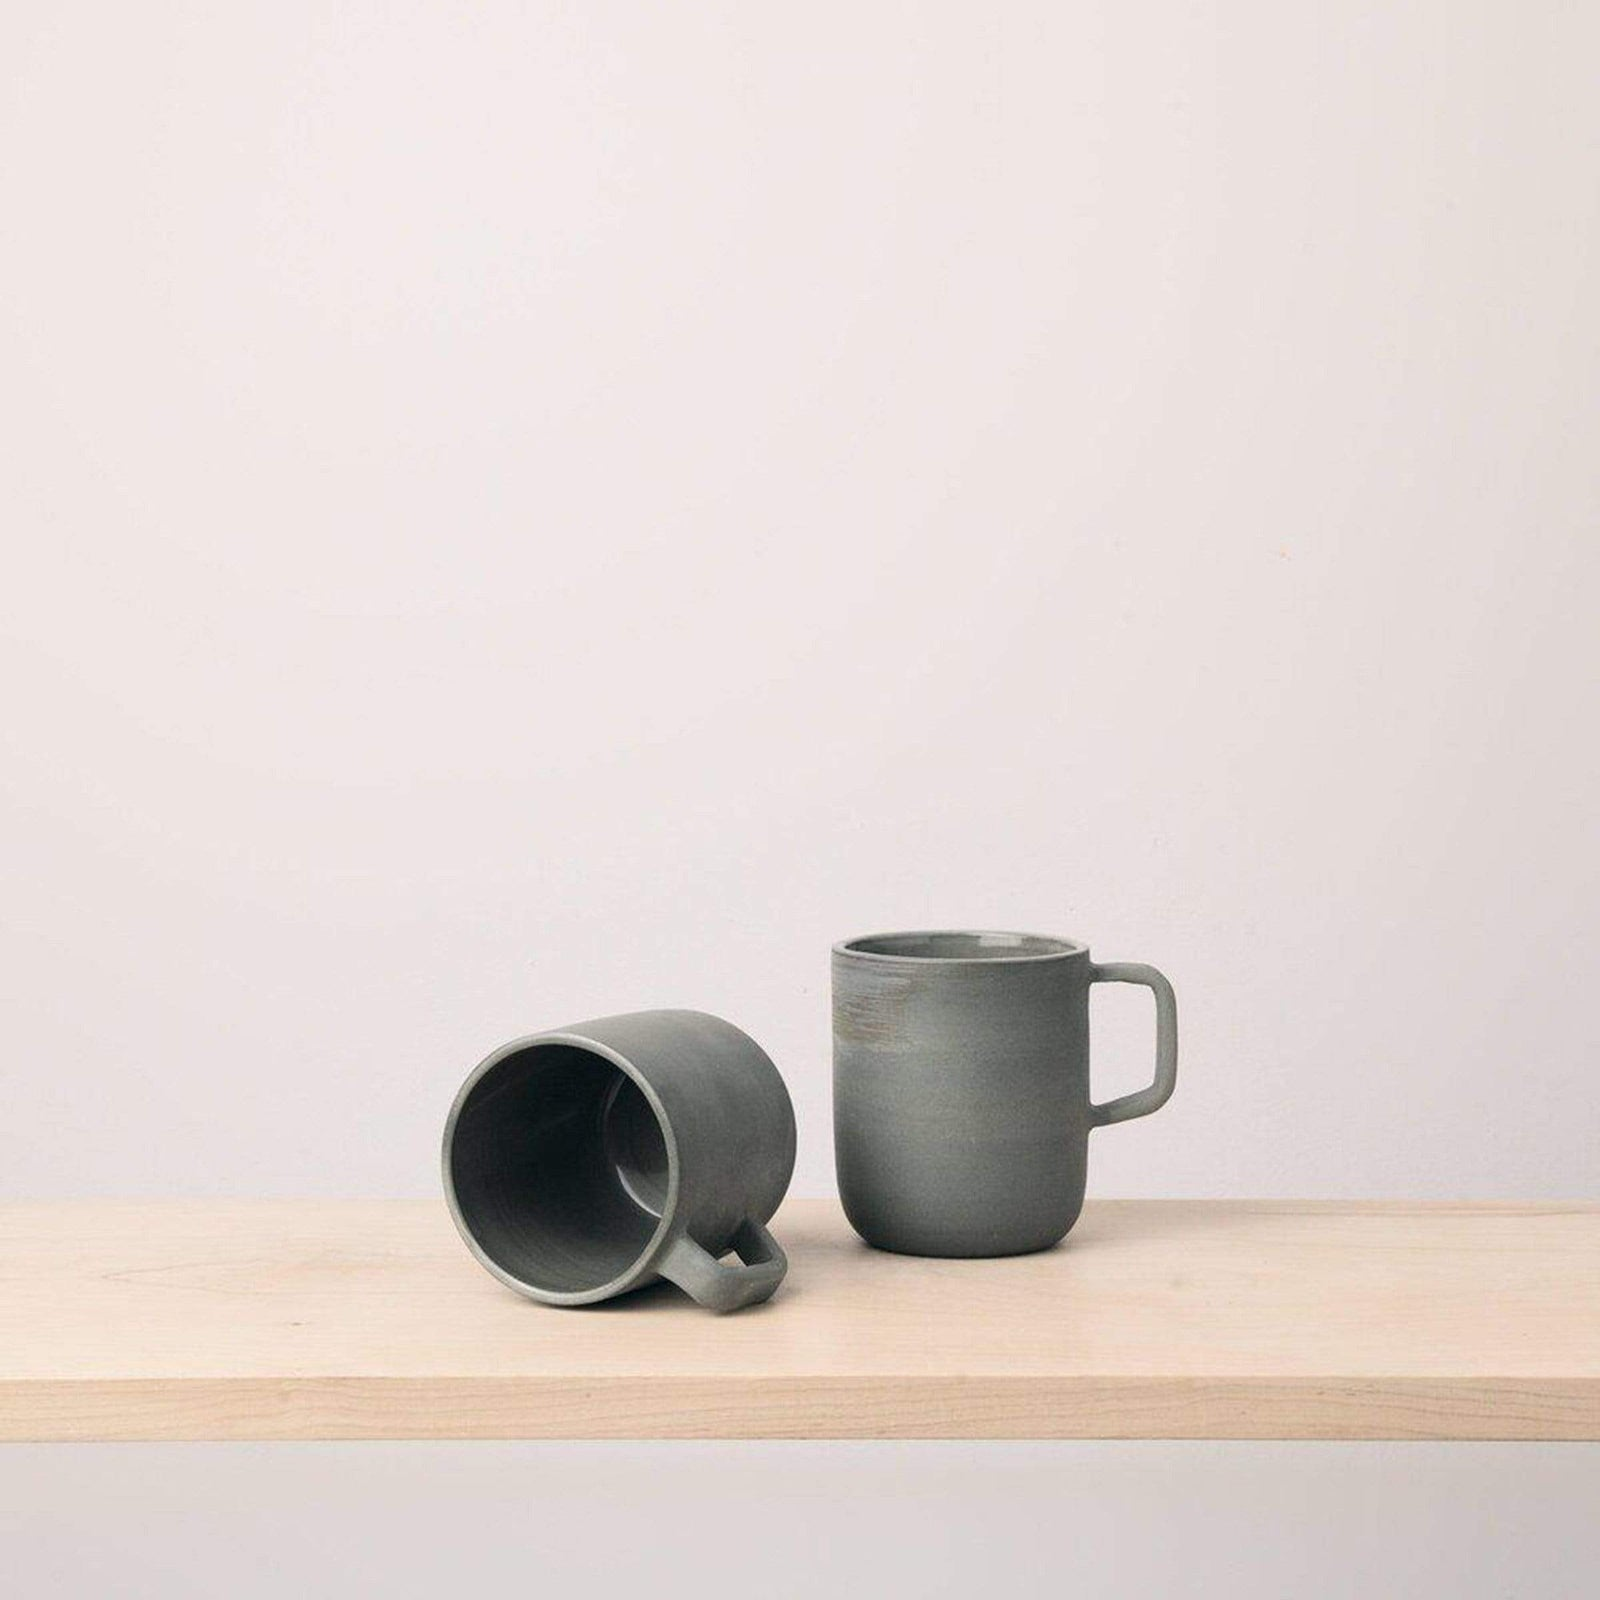 L'Impatience Kitchenware L'insolence Mug